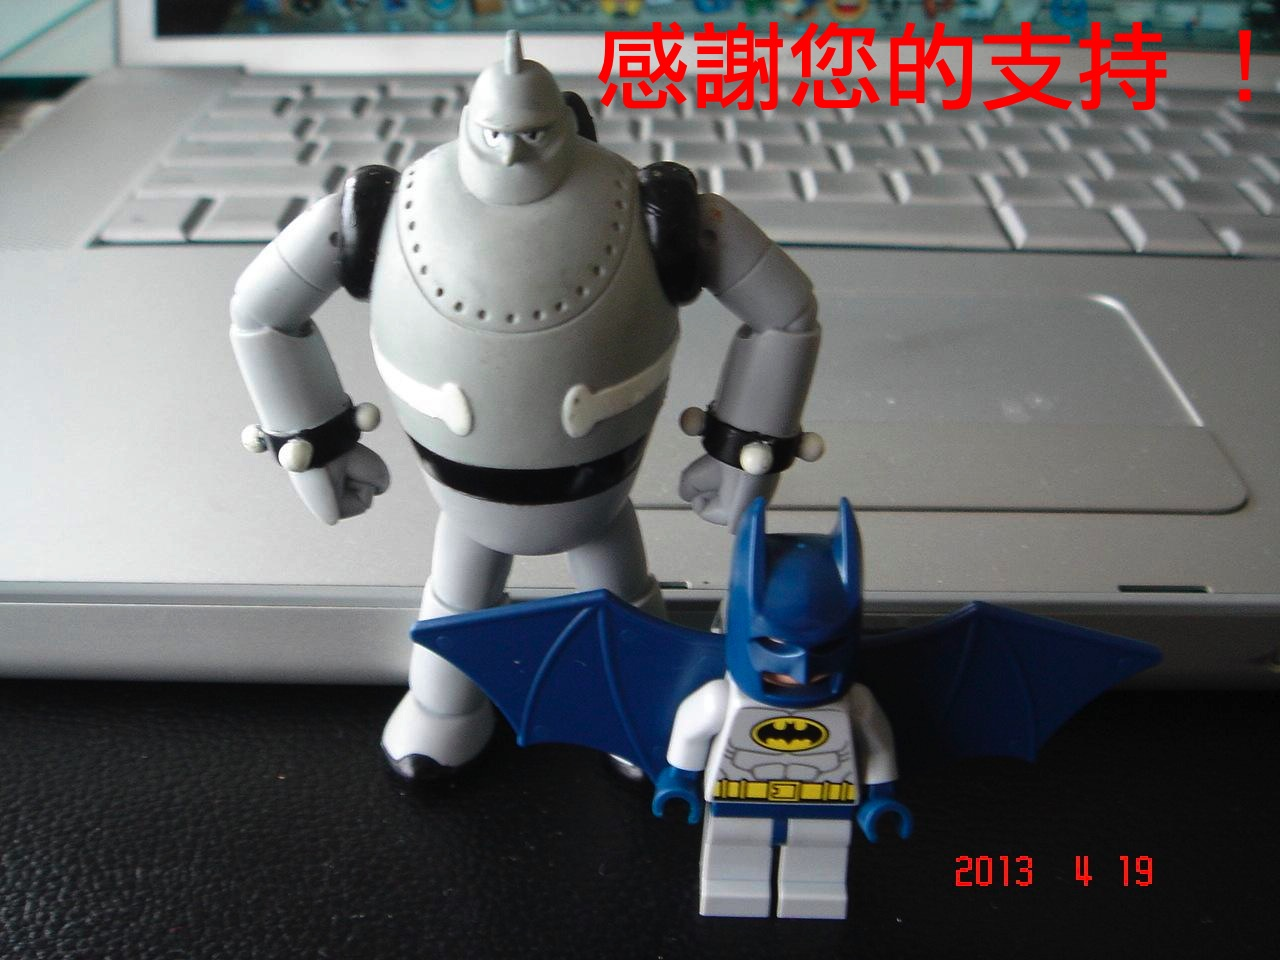 lego_batman_ucc-office_20130506001.jpg